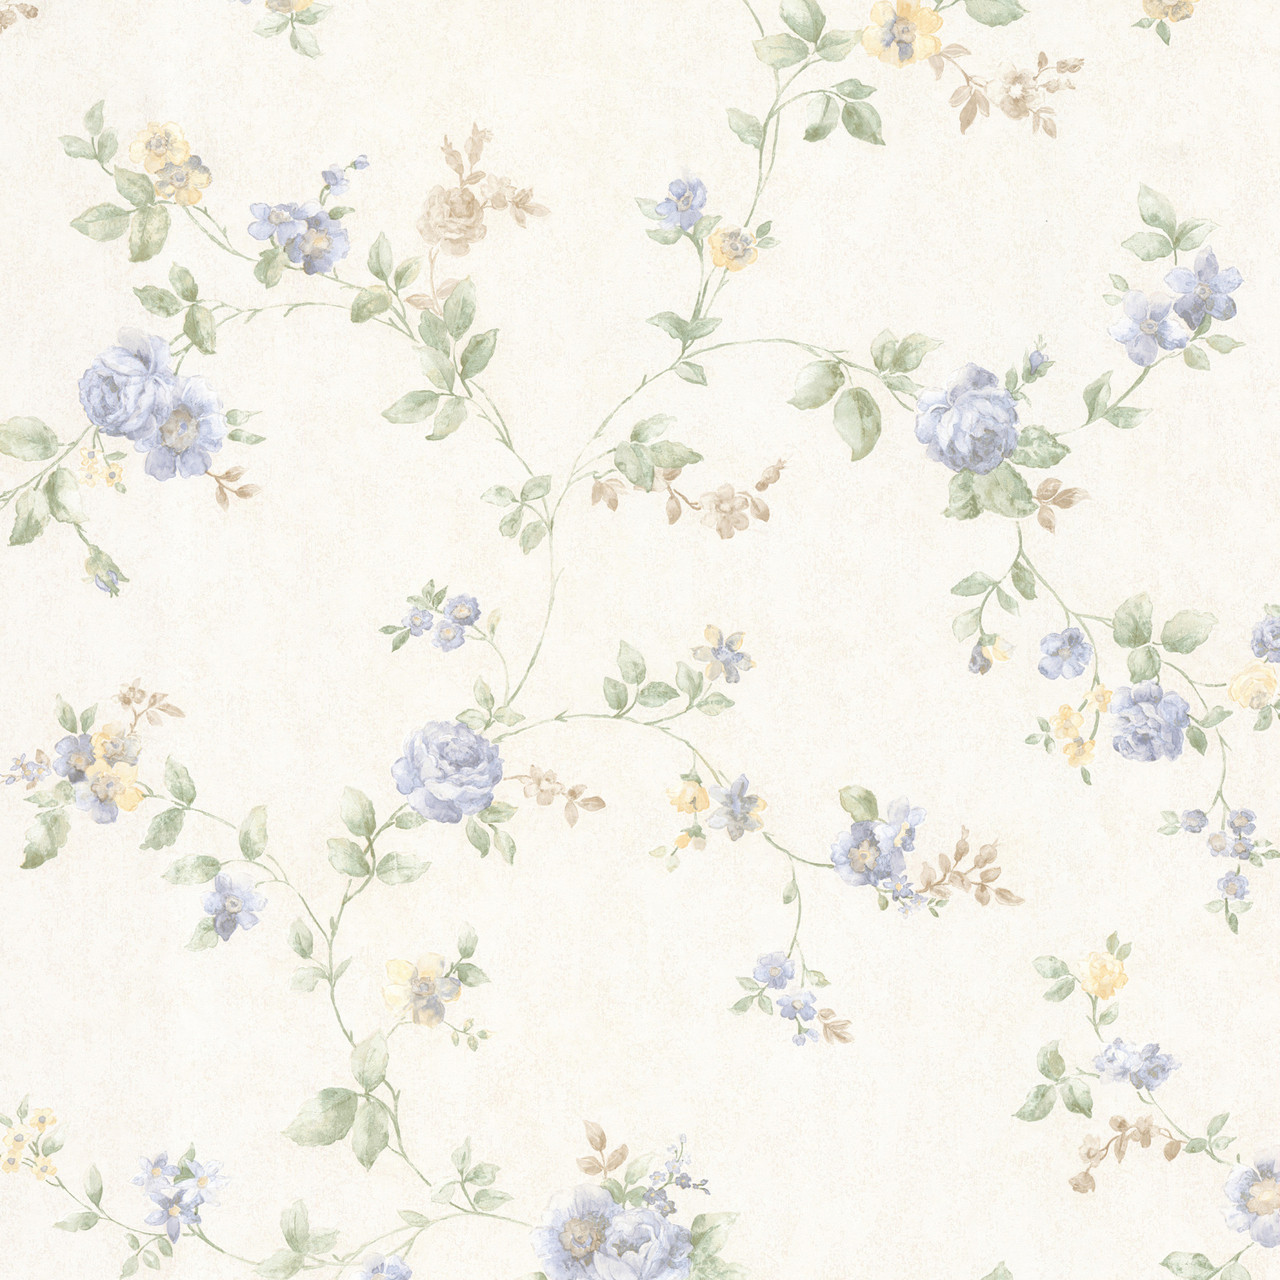 992 68331 Mary Light Blue Floral Vine Wallpaper Indoorwallpaper Com